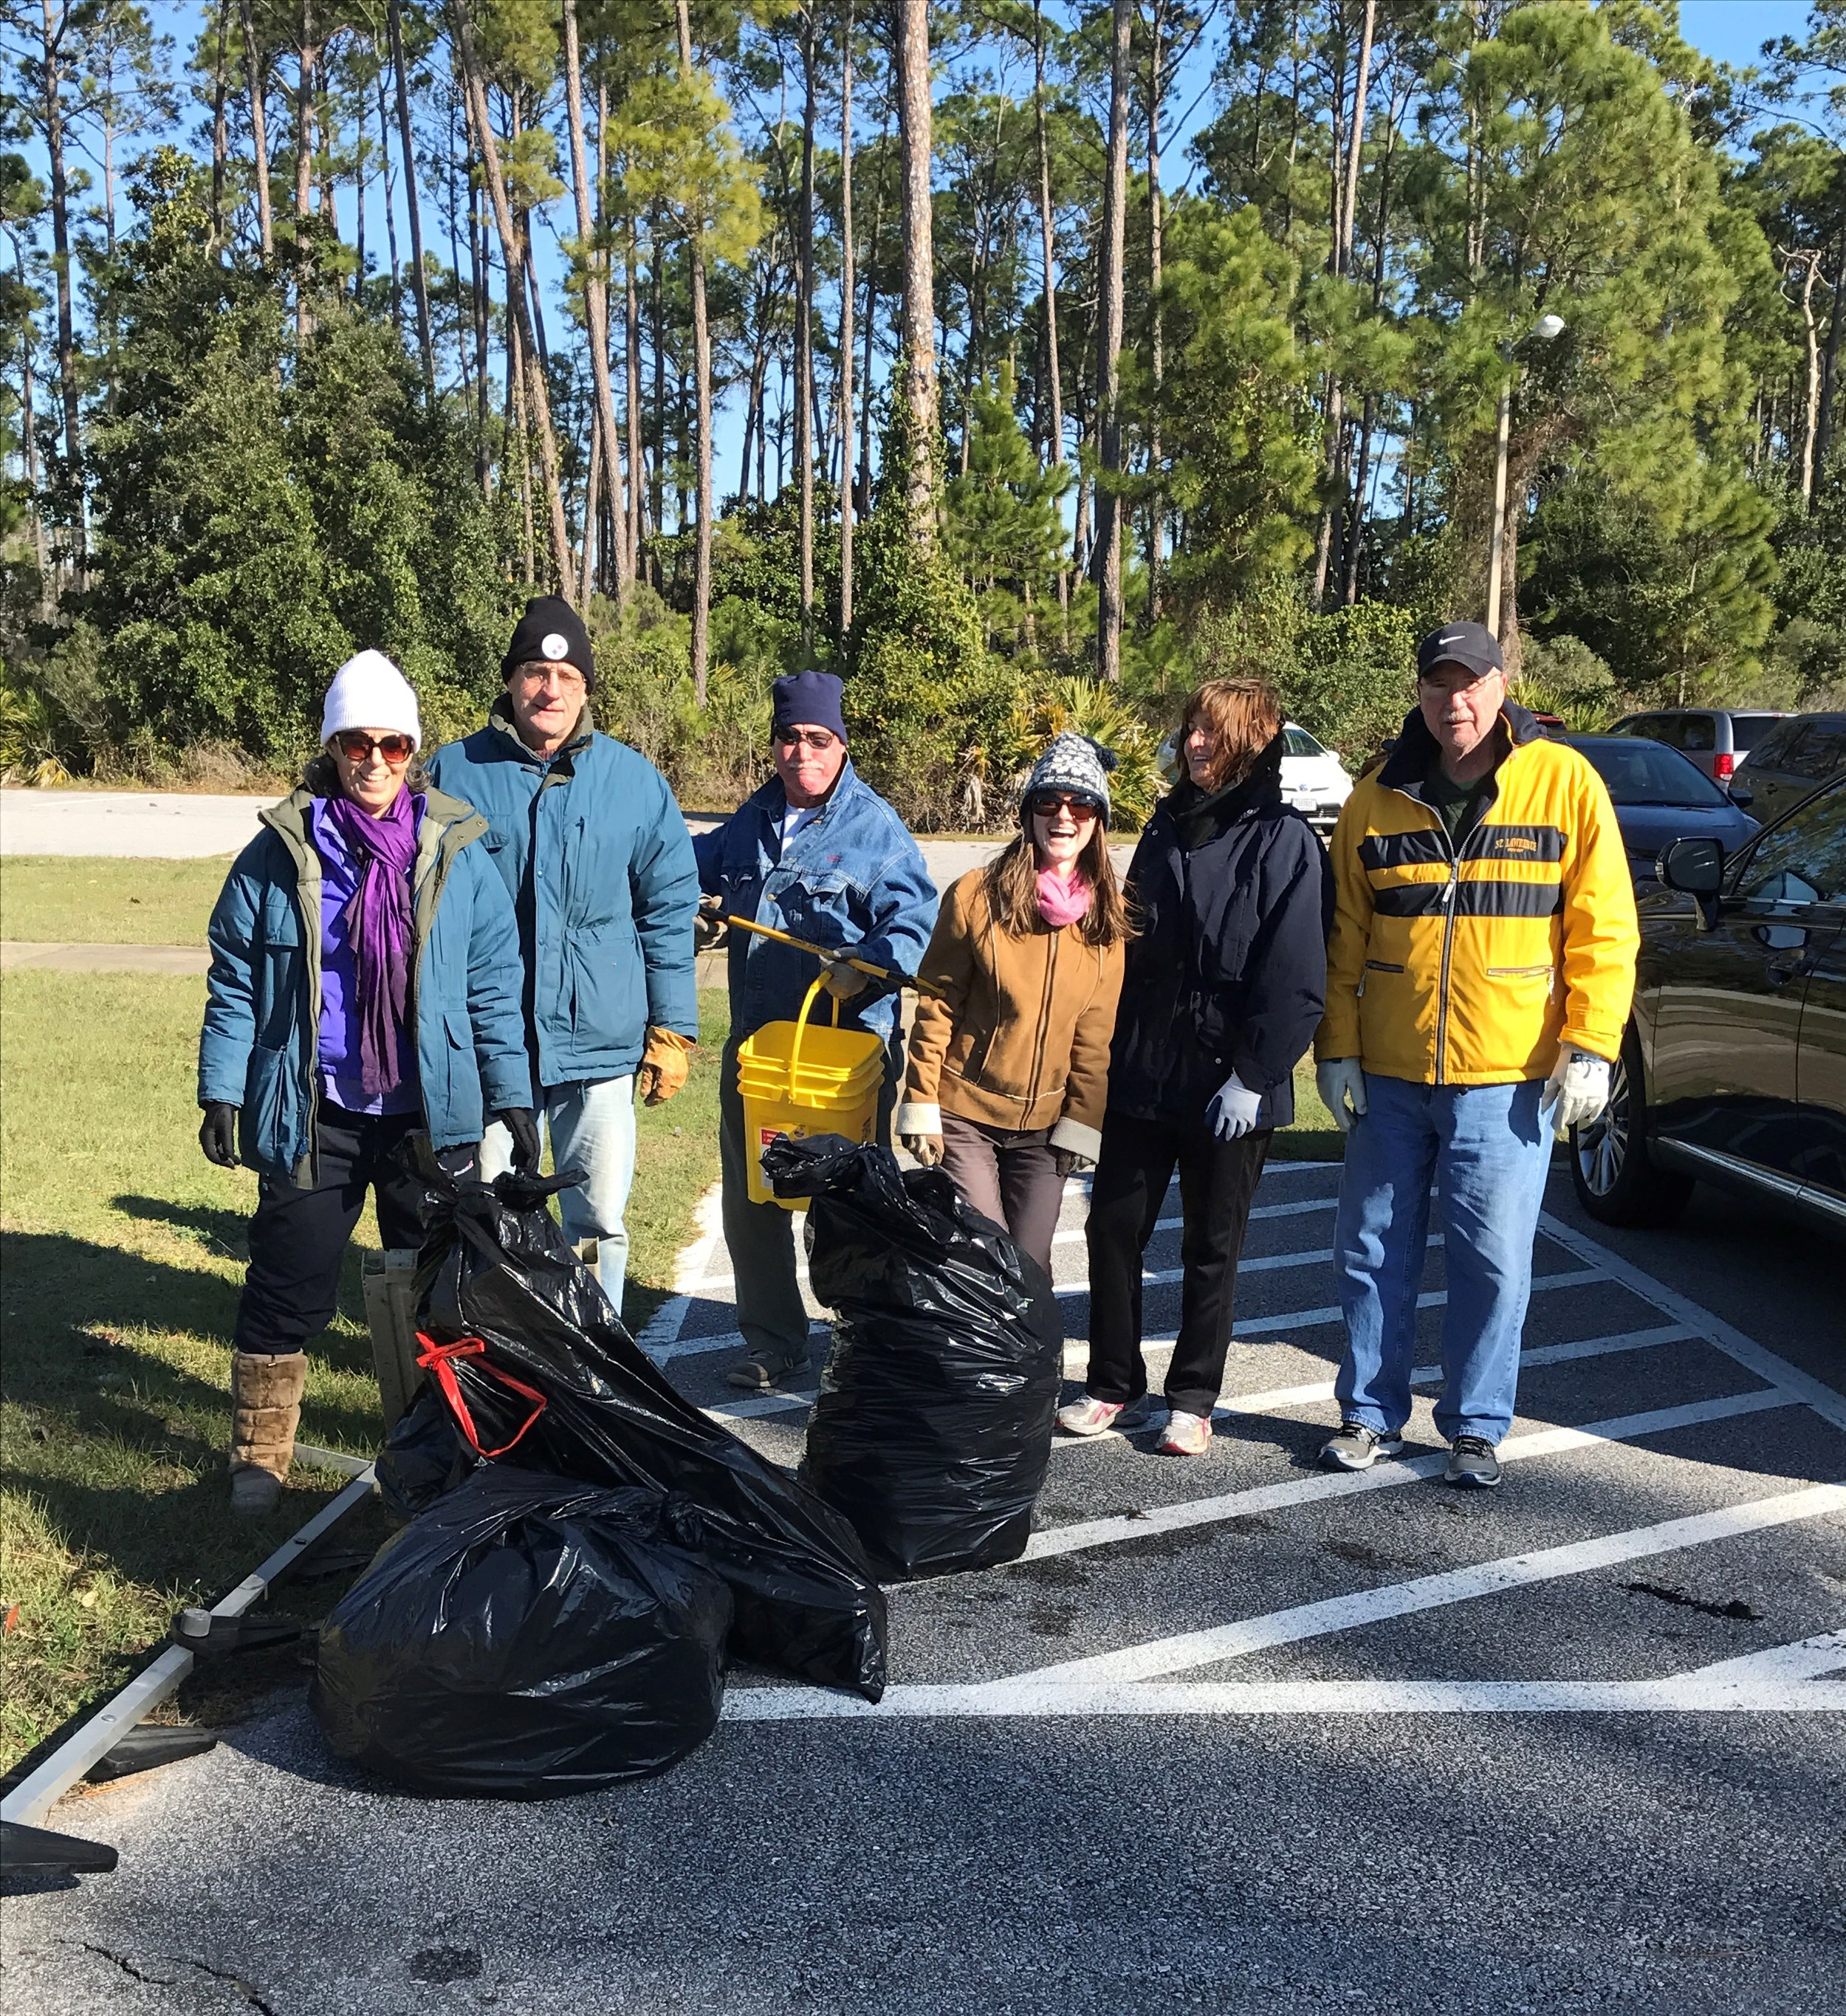 Sixteen brave souls weathered cold for Gulf Breeze at today's cleanup. We picked up 101 lbs of marine debris including cigarette butts (most common), food wrappers and styrofoam.